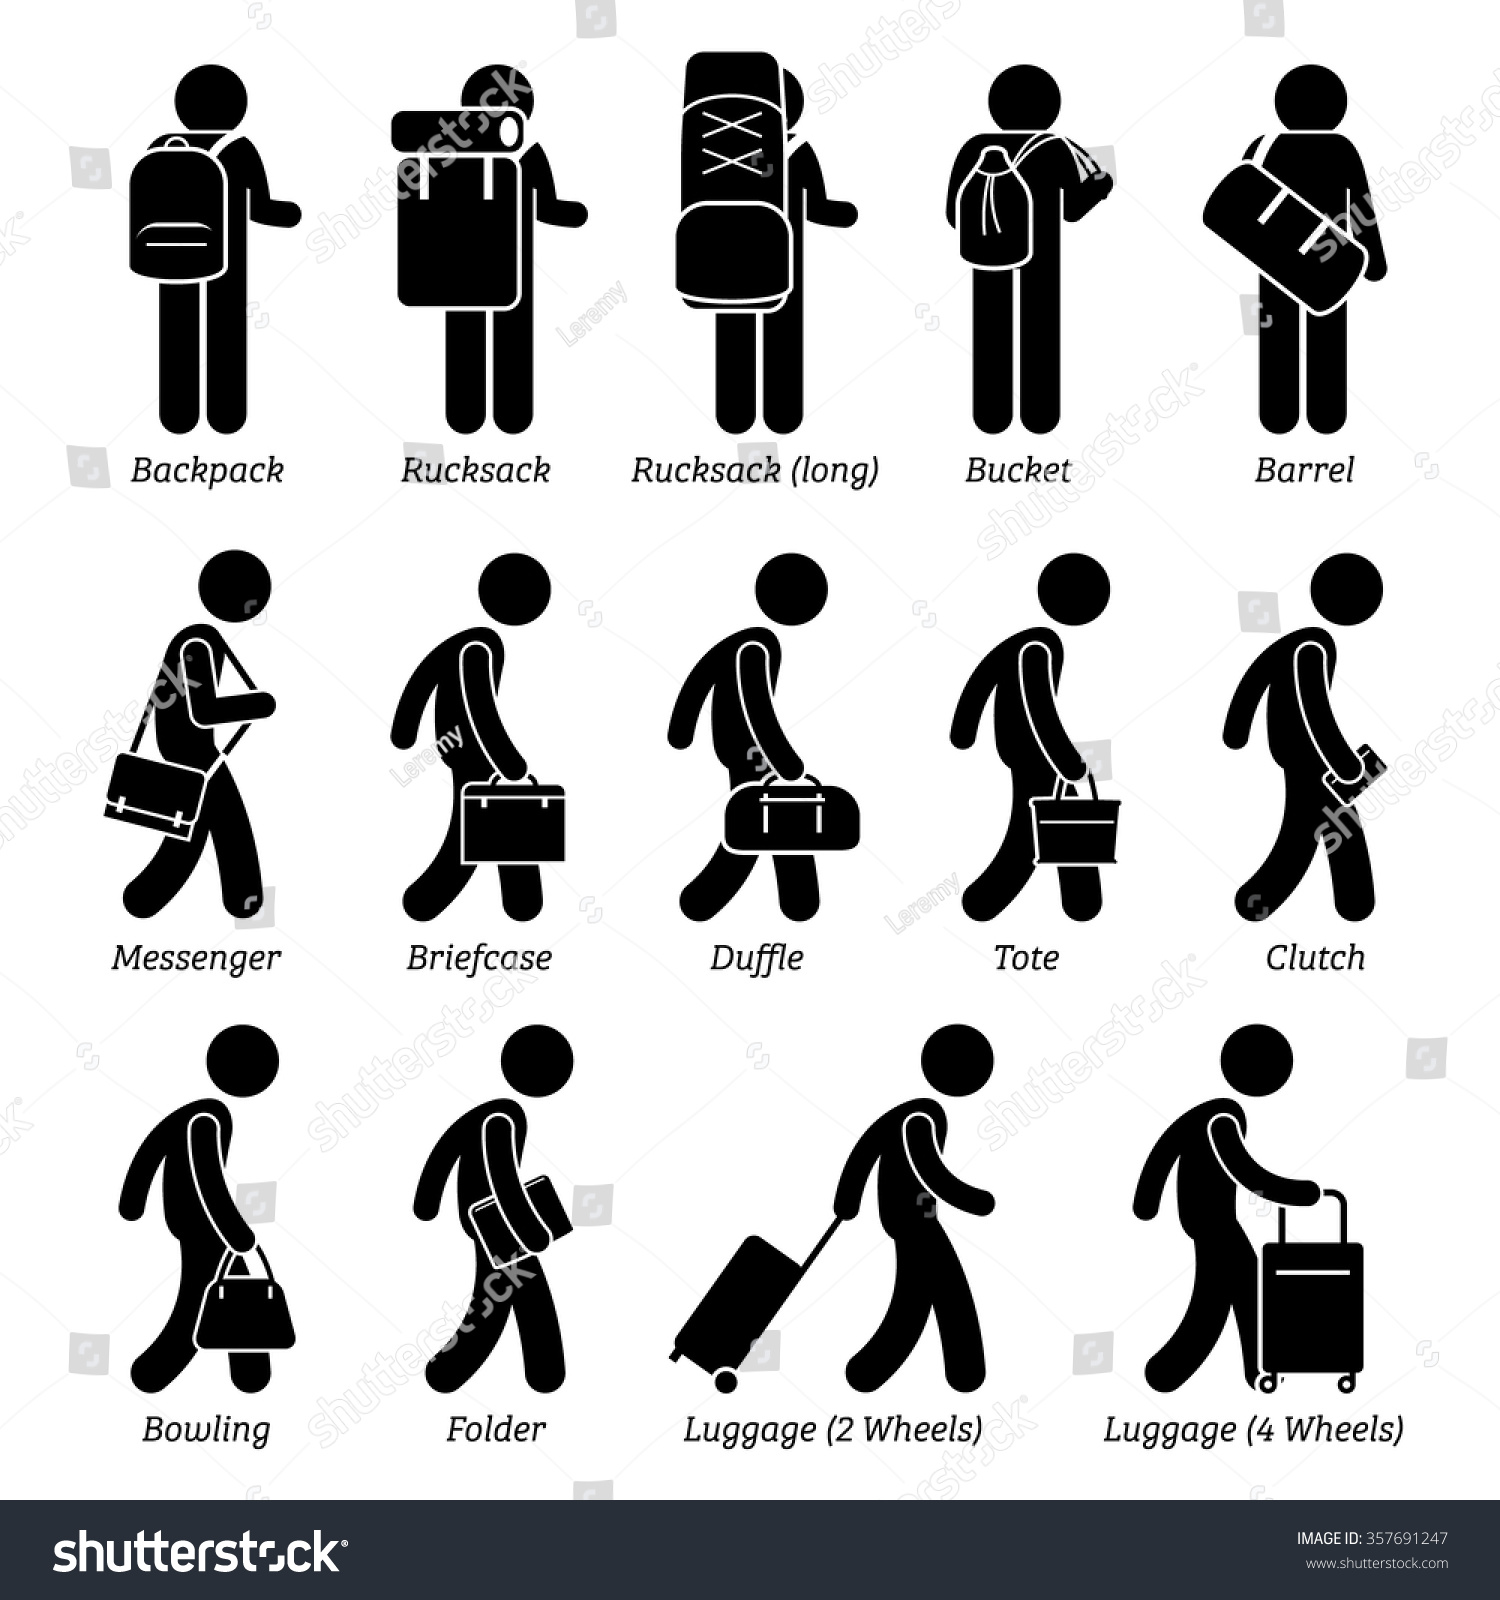 Type Man Male Bags Luggage Stick Stock Vector 357691247 - Shutterstock